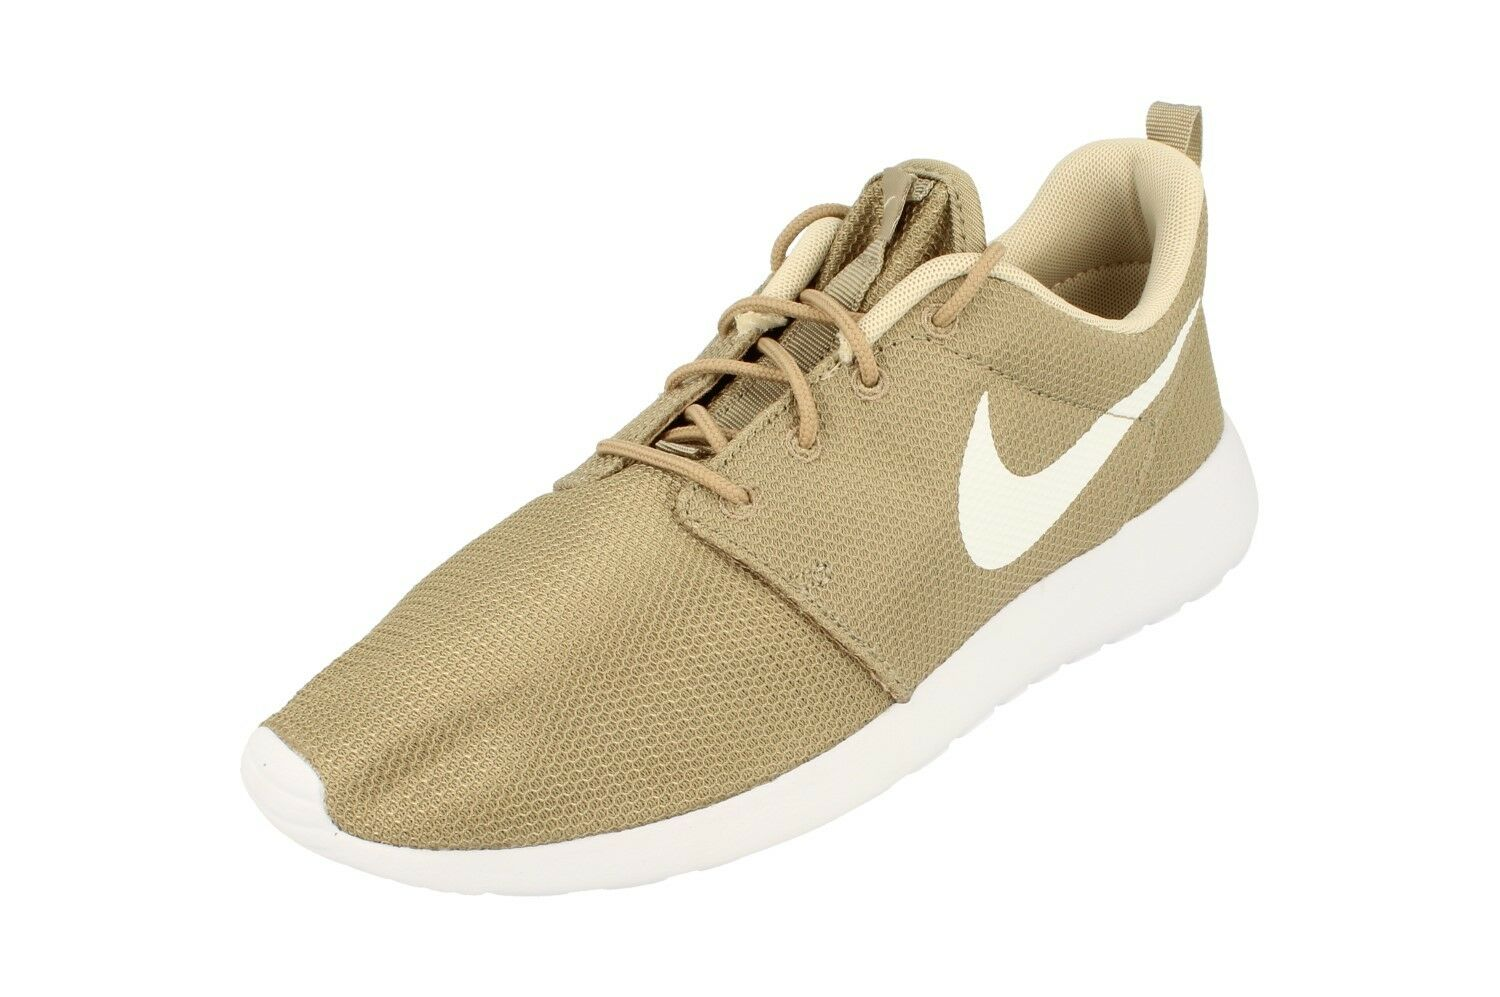 Nike Roshe One Baskets Hommes 511881 Baskets 203